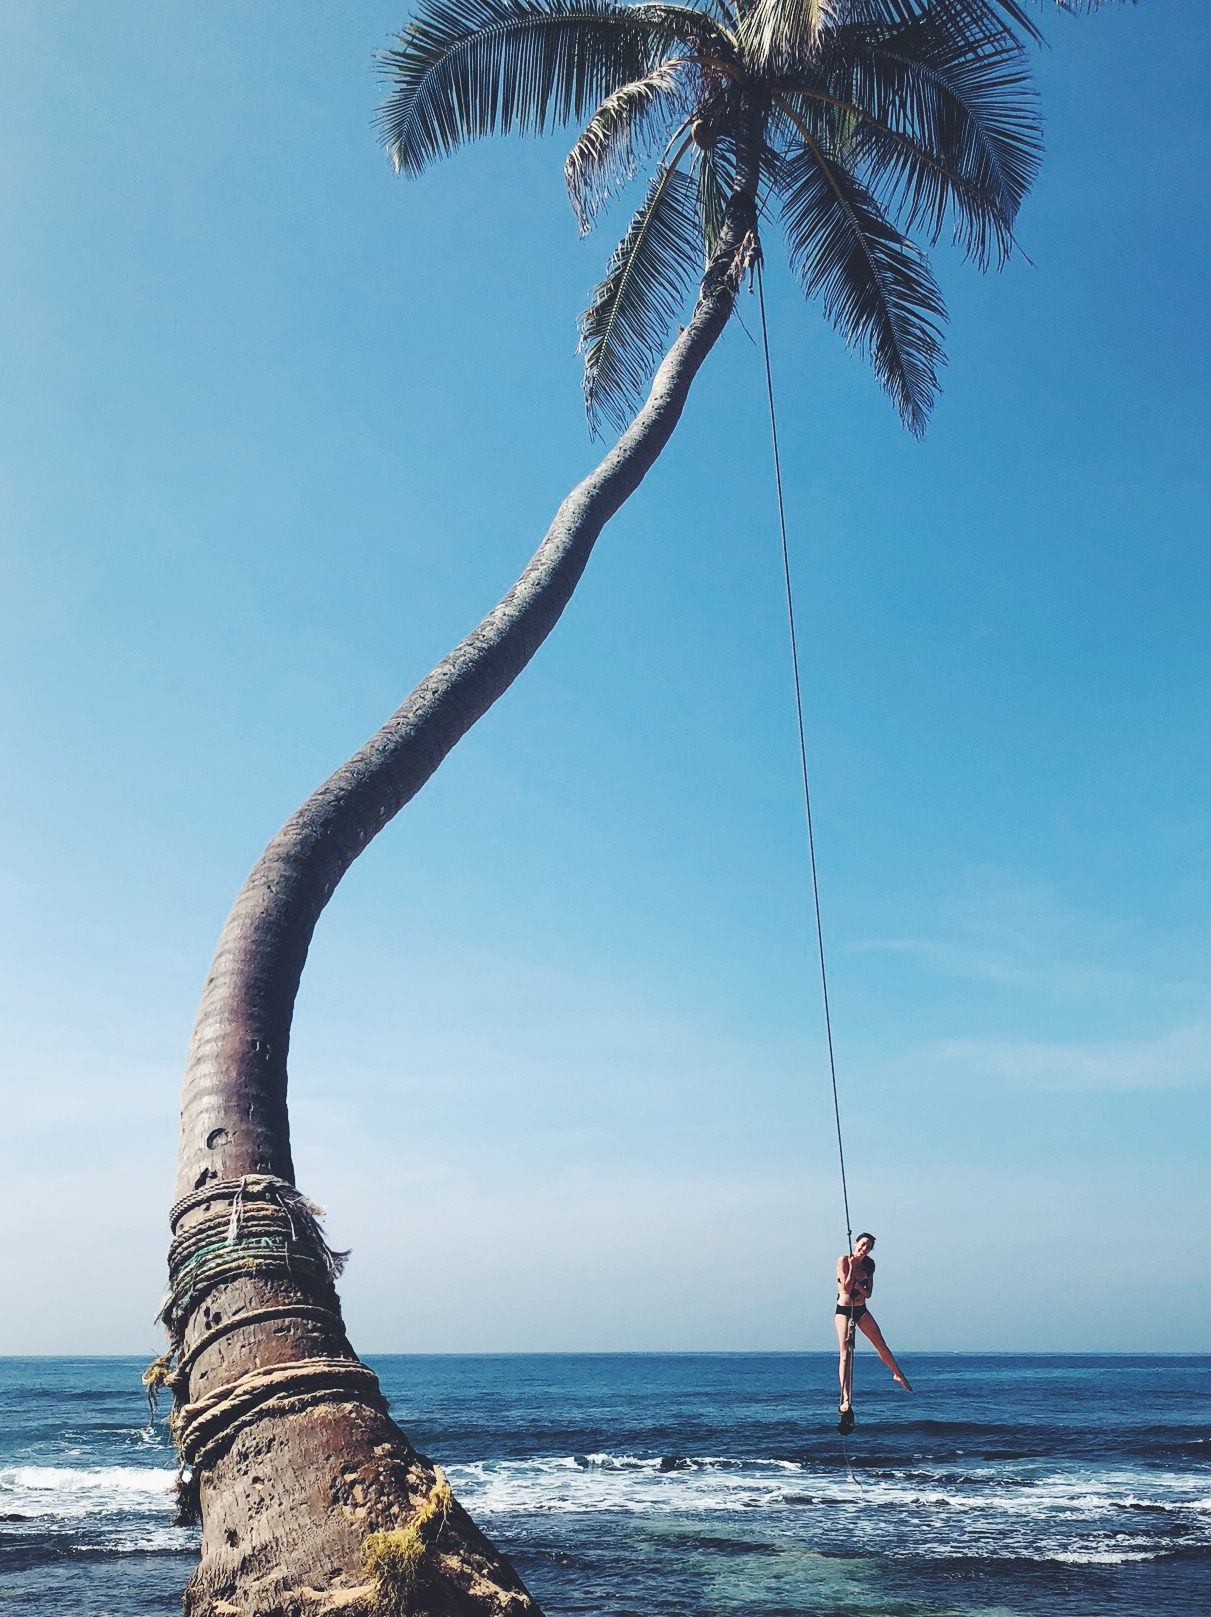 Dalawella Beach - Dalawella beach is just a small town, but this palm tree rope swing makes it worth the extra stop. Head over to Dalawella guest house for a smoothie and spend $3 to hop on the rope swing and swing until you can't swing anymore.